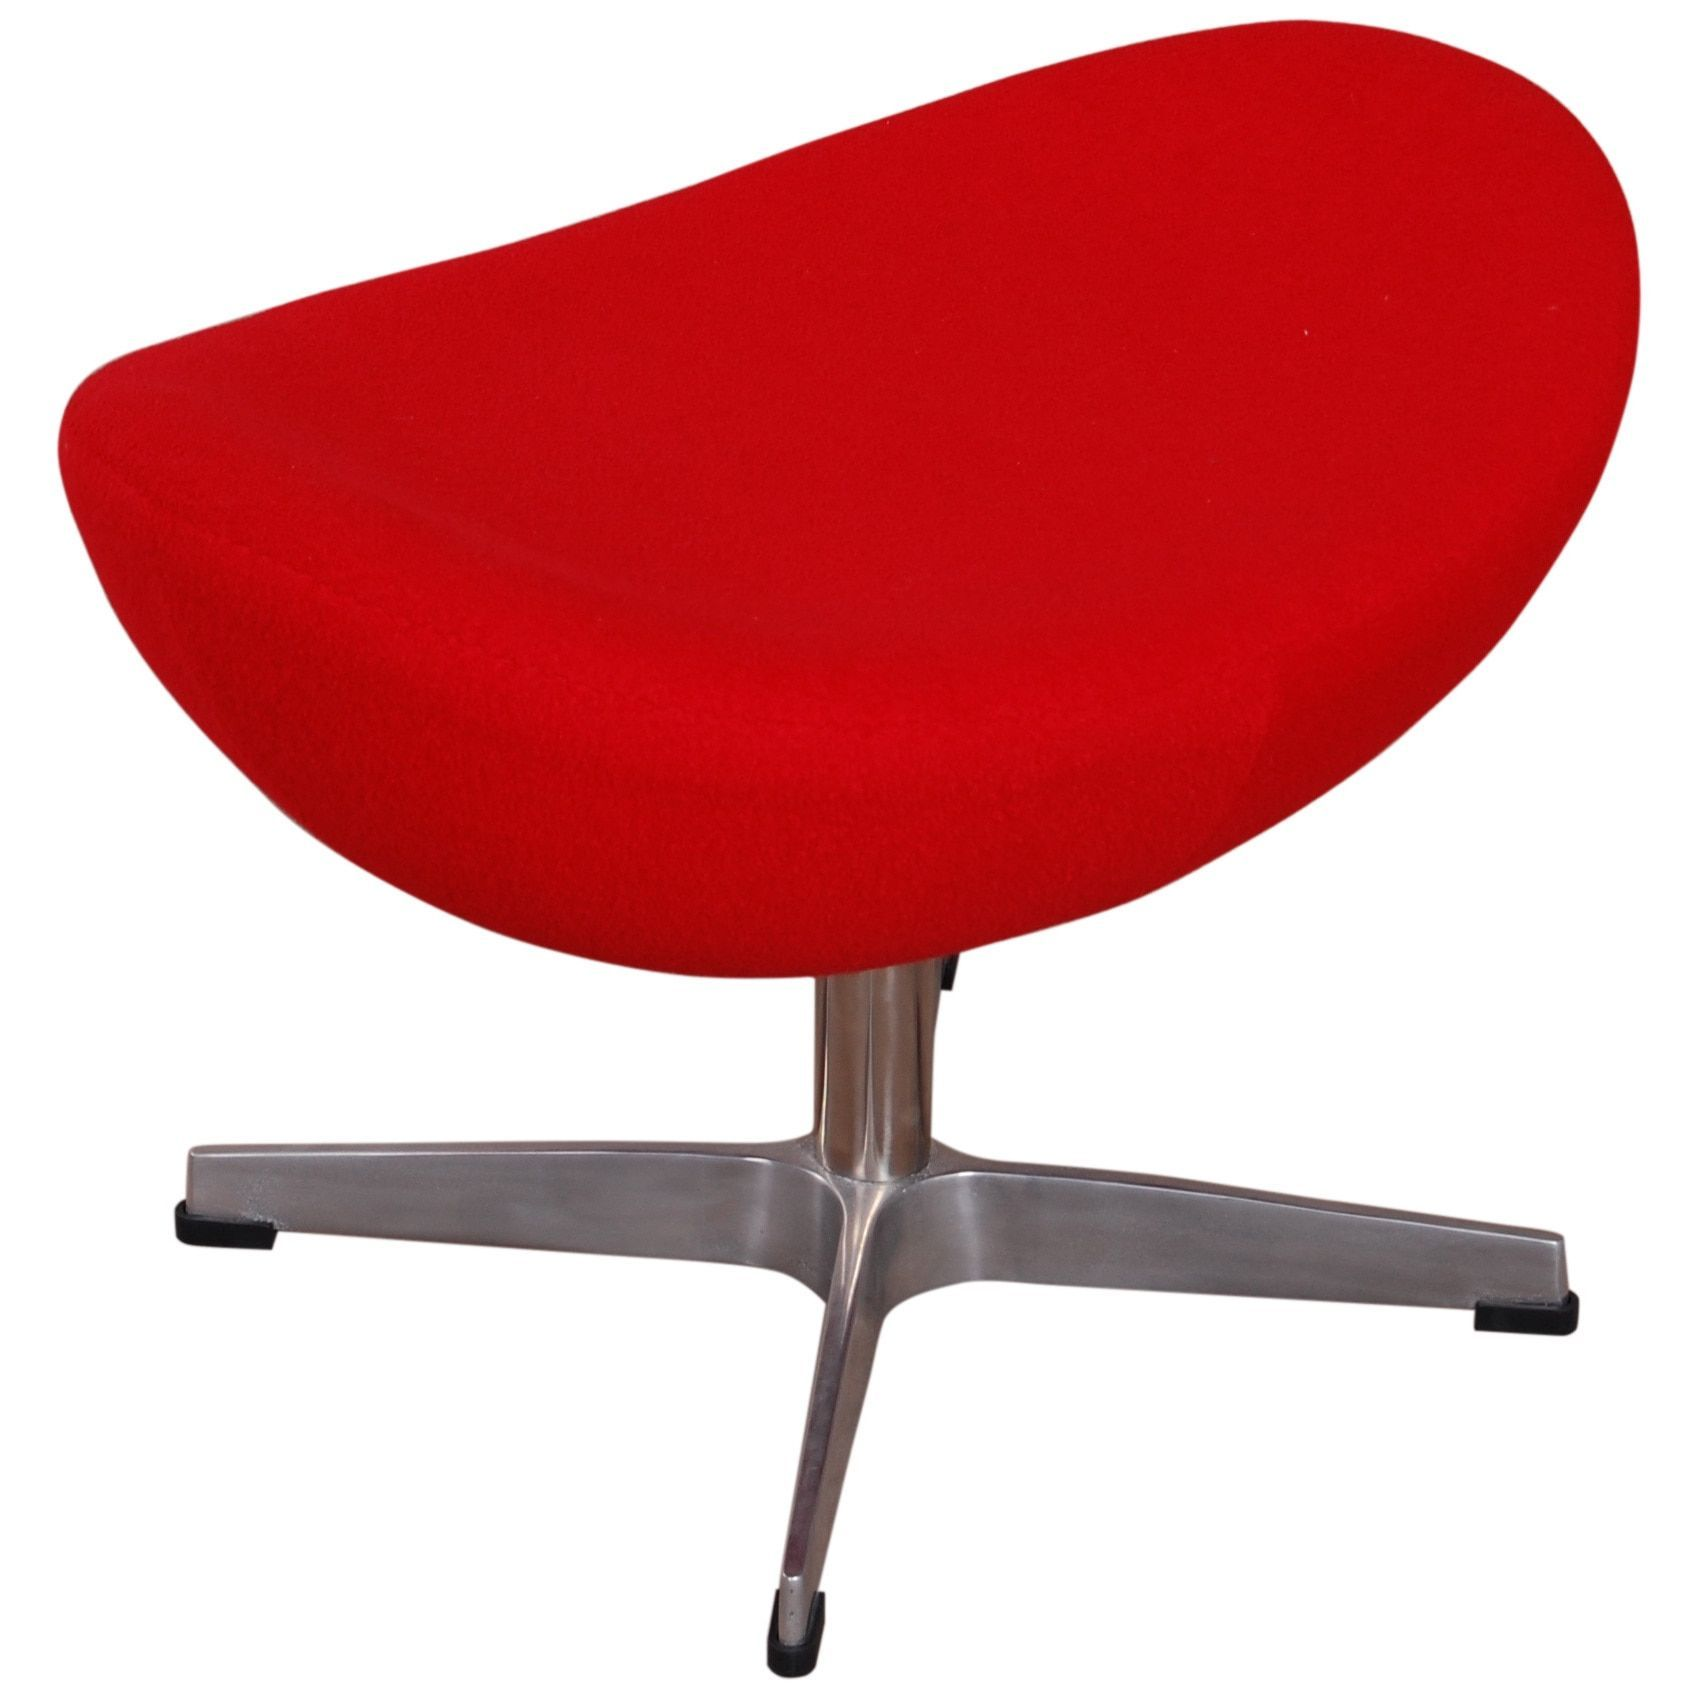 Furniture MLF Red Cashmere Egg Chair Ottoman (Red) (Wool)